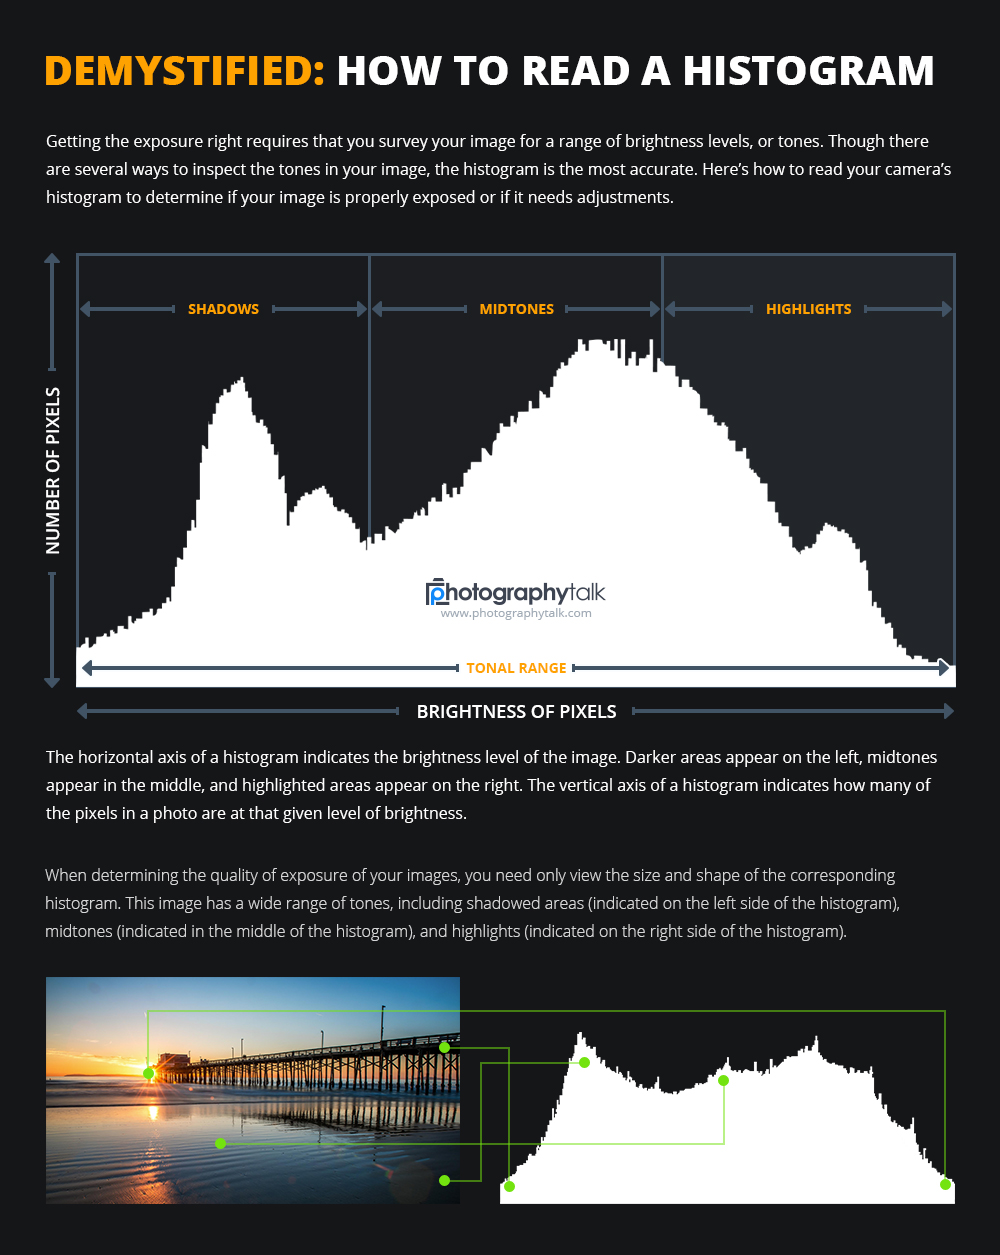 Demystified How To Read A Histogram image